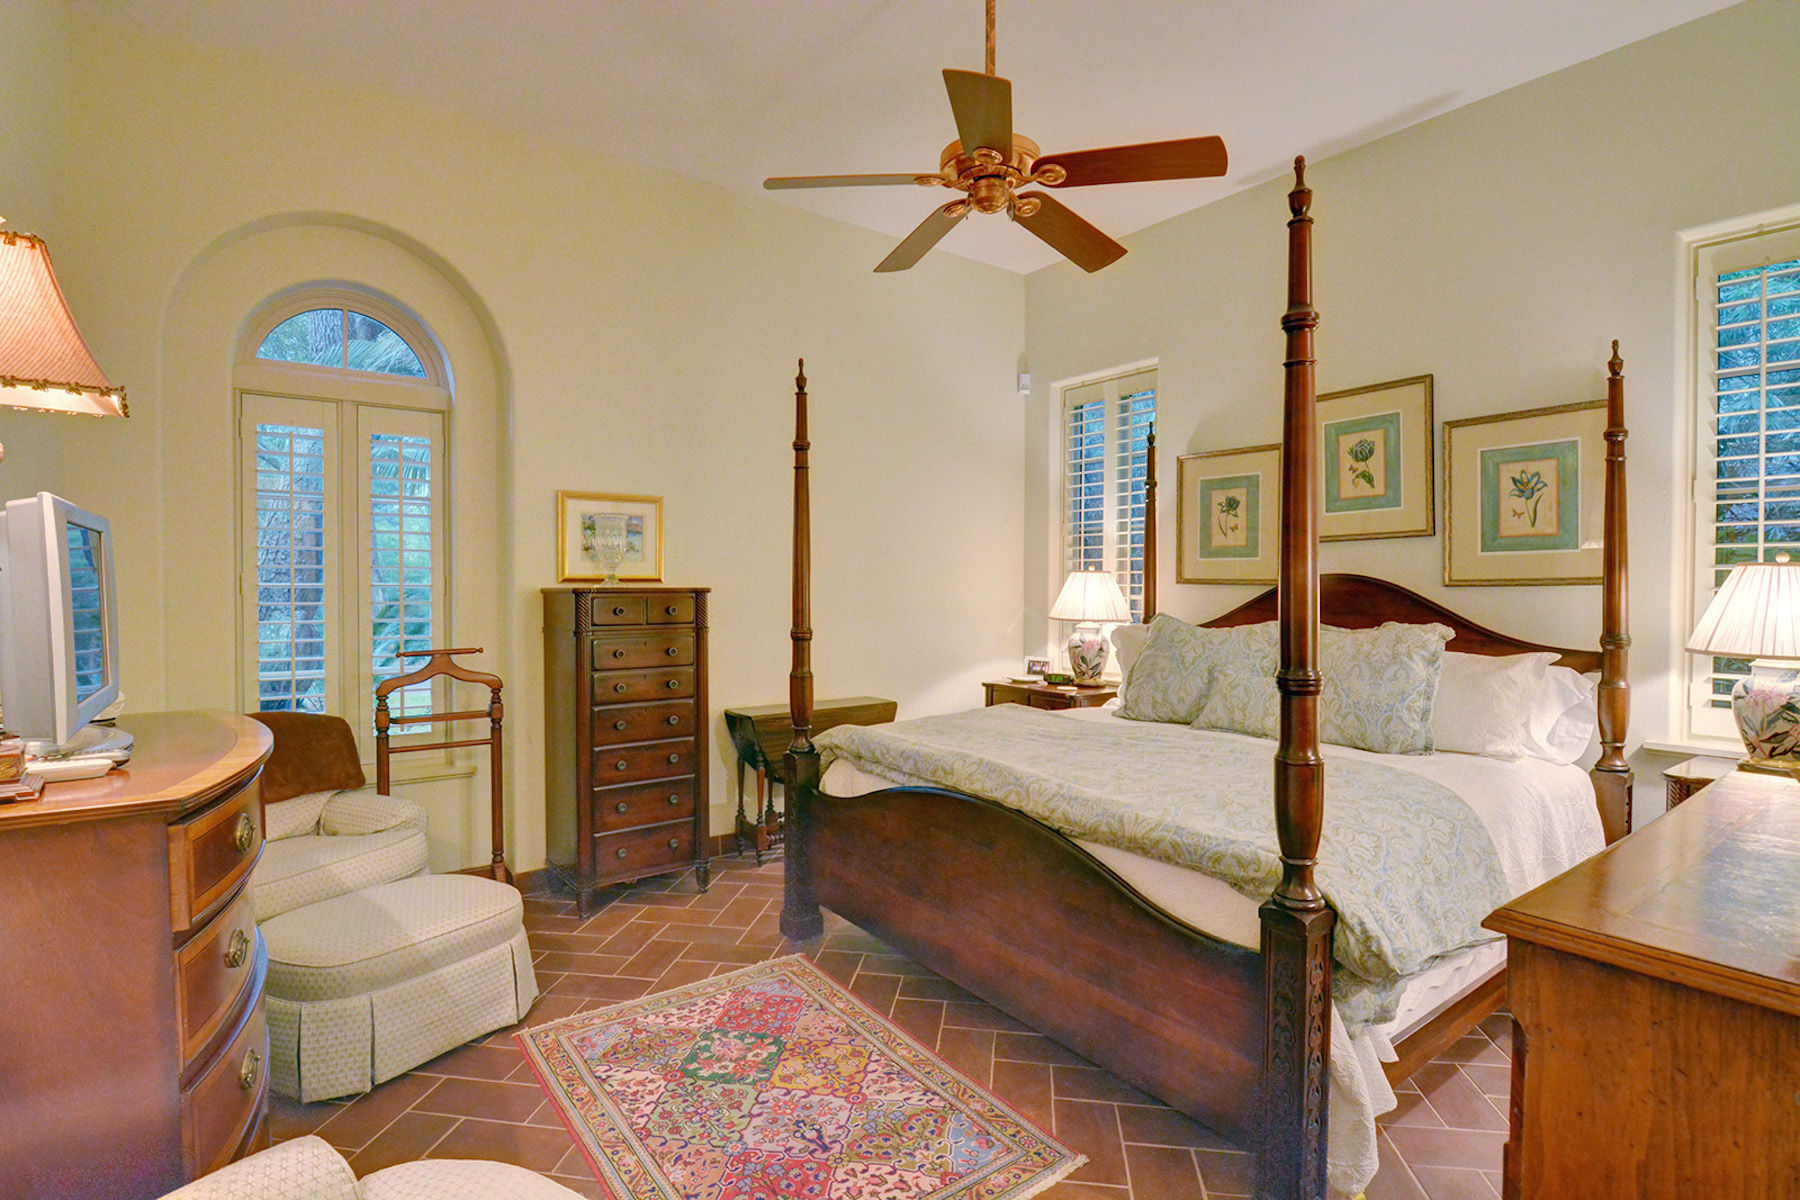 Additional photo for property listing at Cottage 28 124 E 7th St Sea Island, ジョージア 31561 アメリカ合衆国